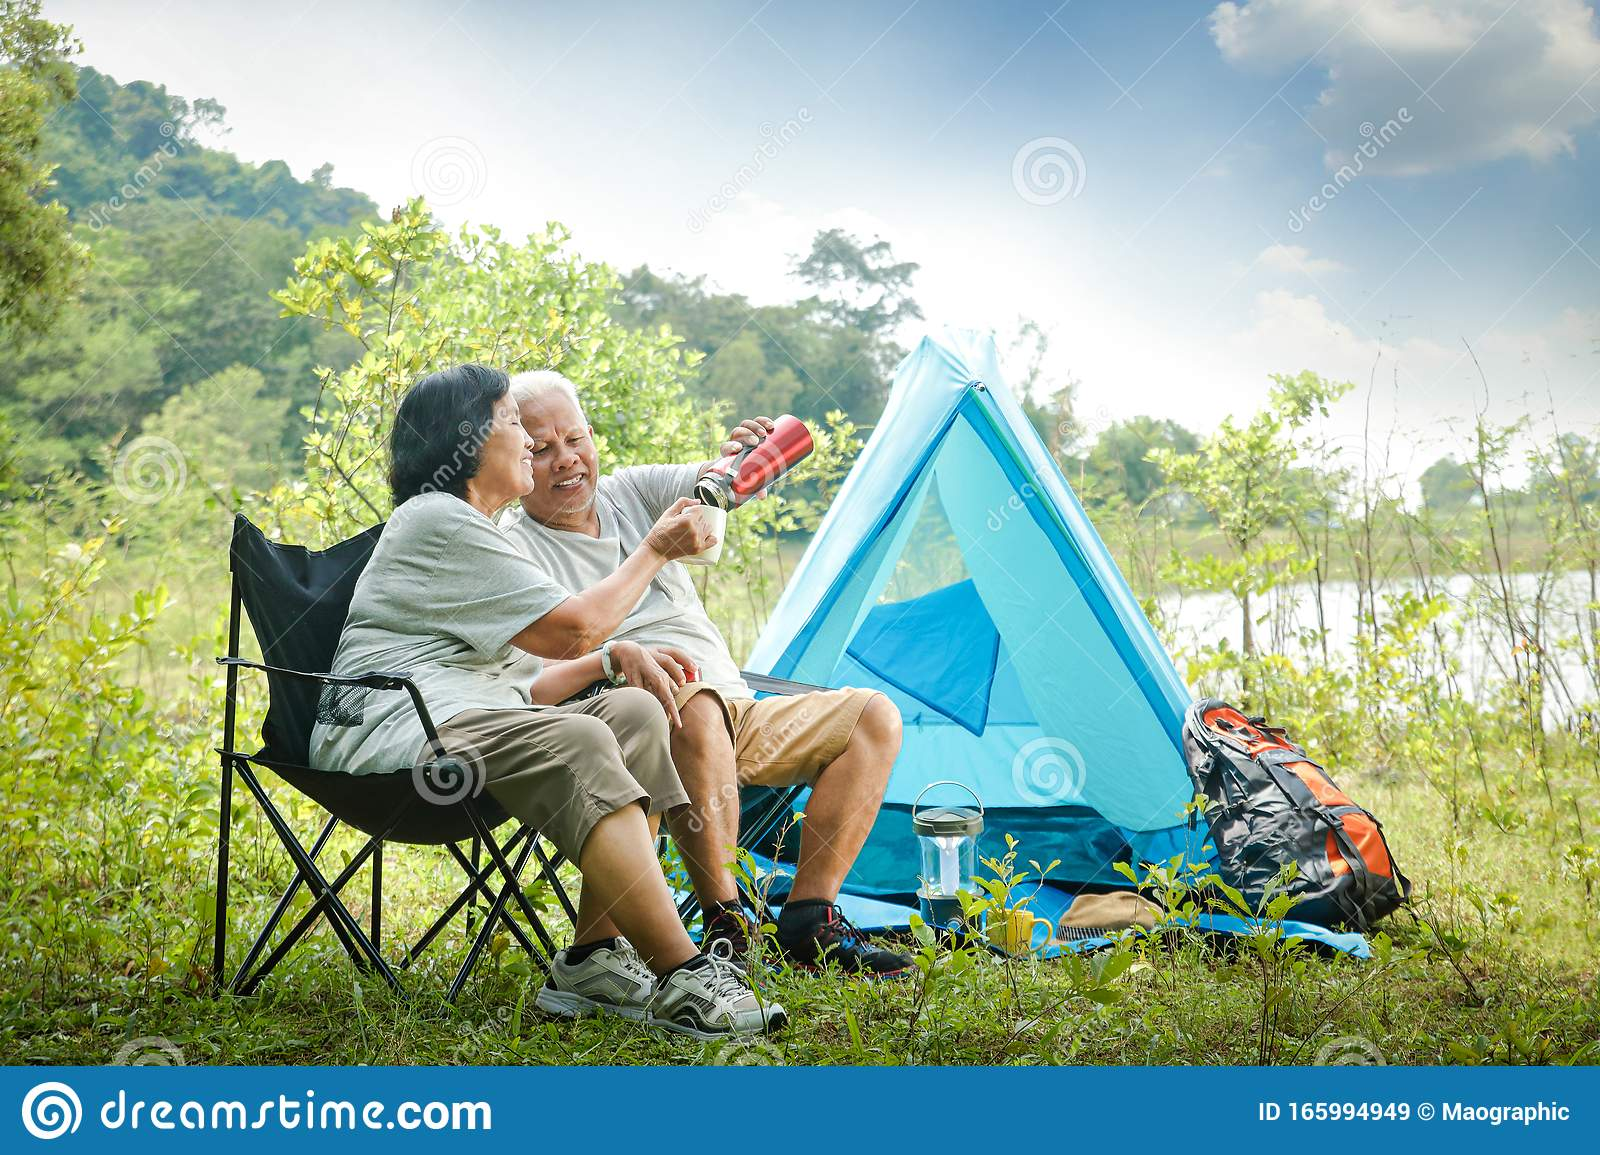 The Old Couple Camping In The Forest To Relax In Retirement Stock Image -  Image of couple, adventure: 165994949